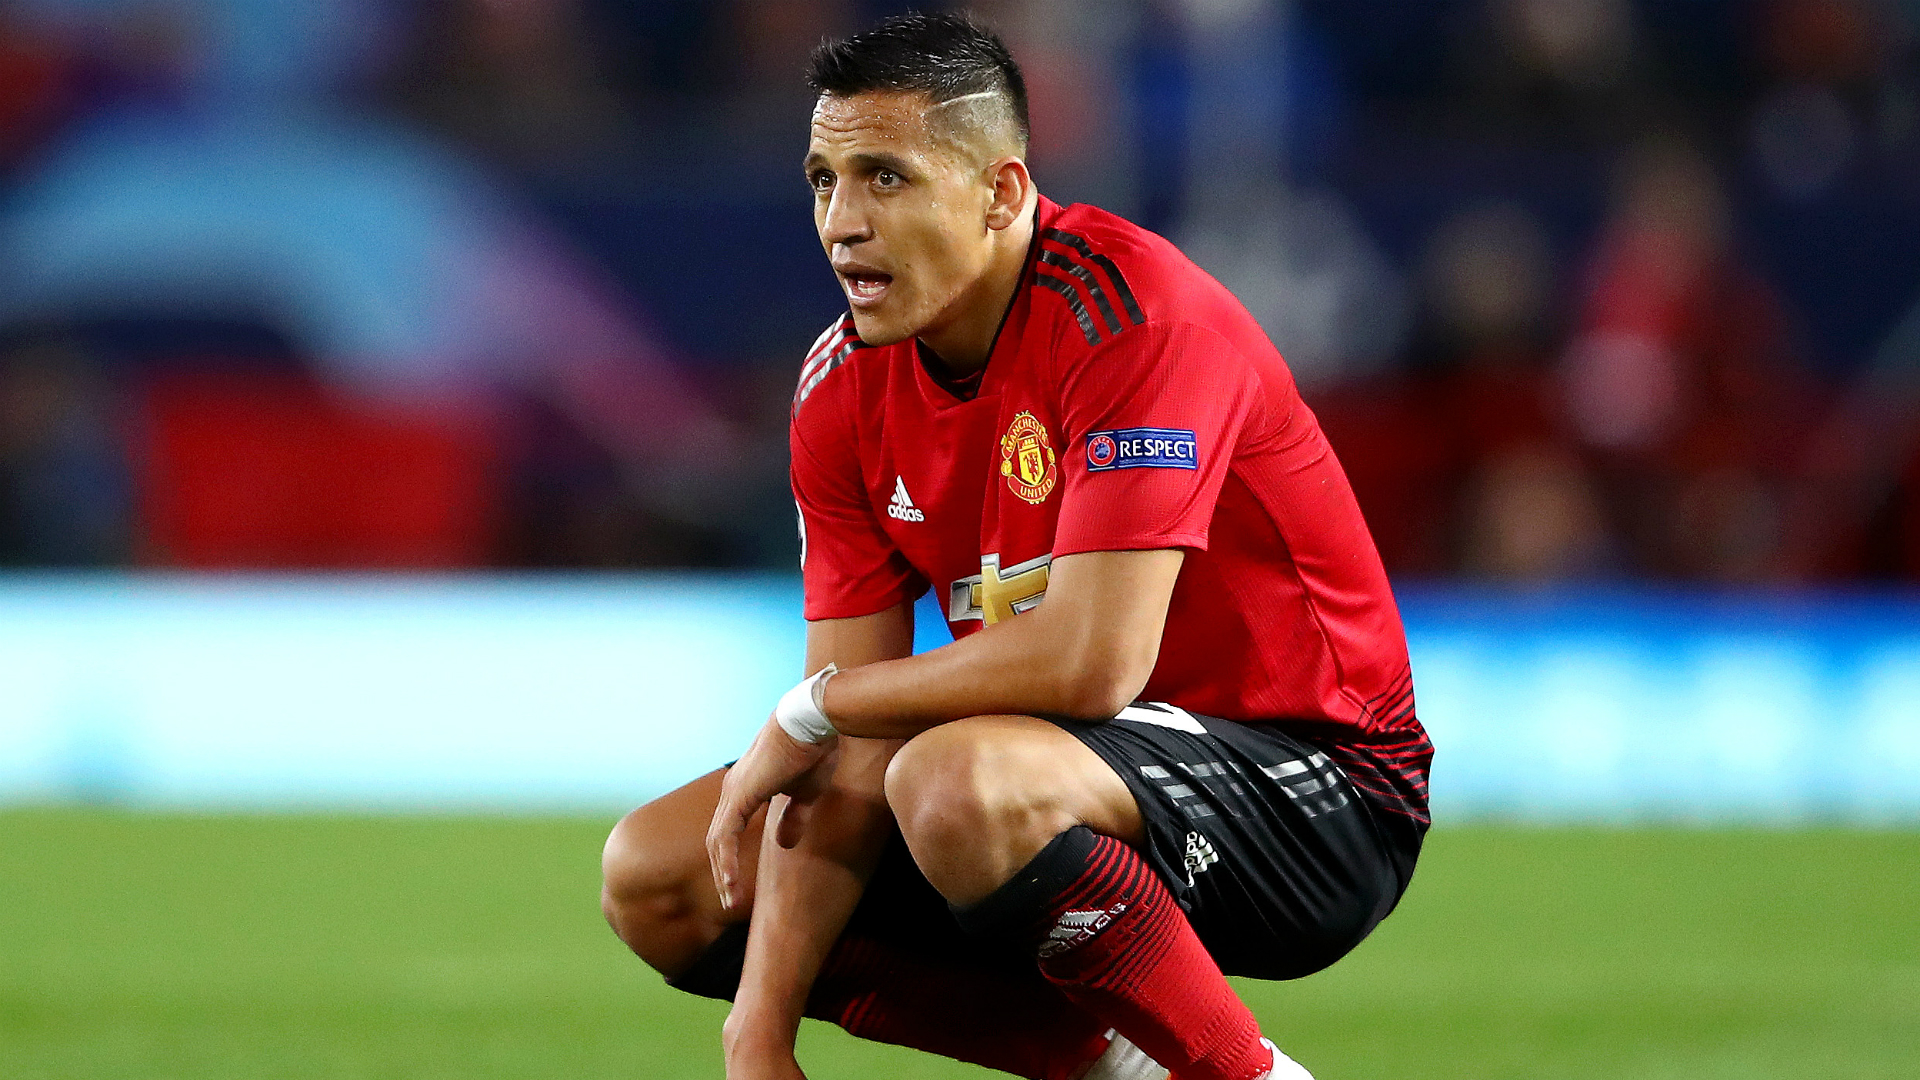 Sanchez in as Manchester United make three changes